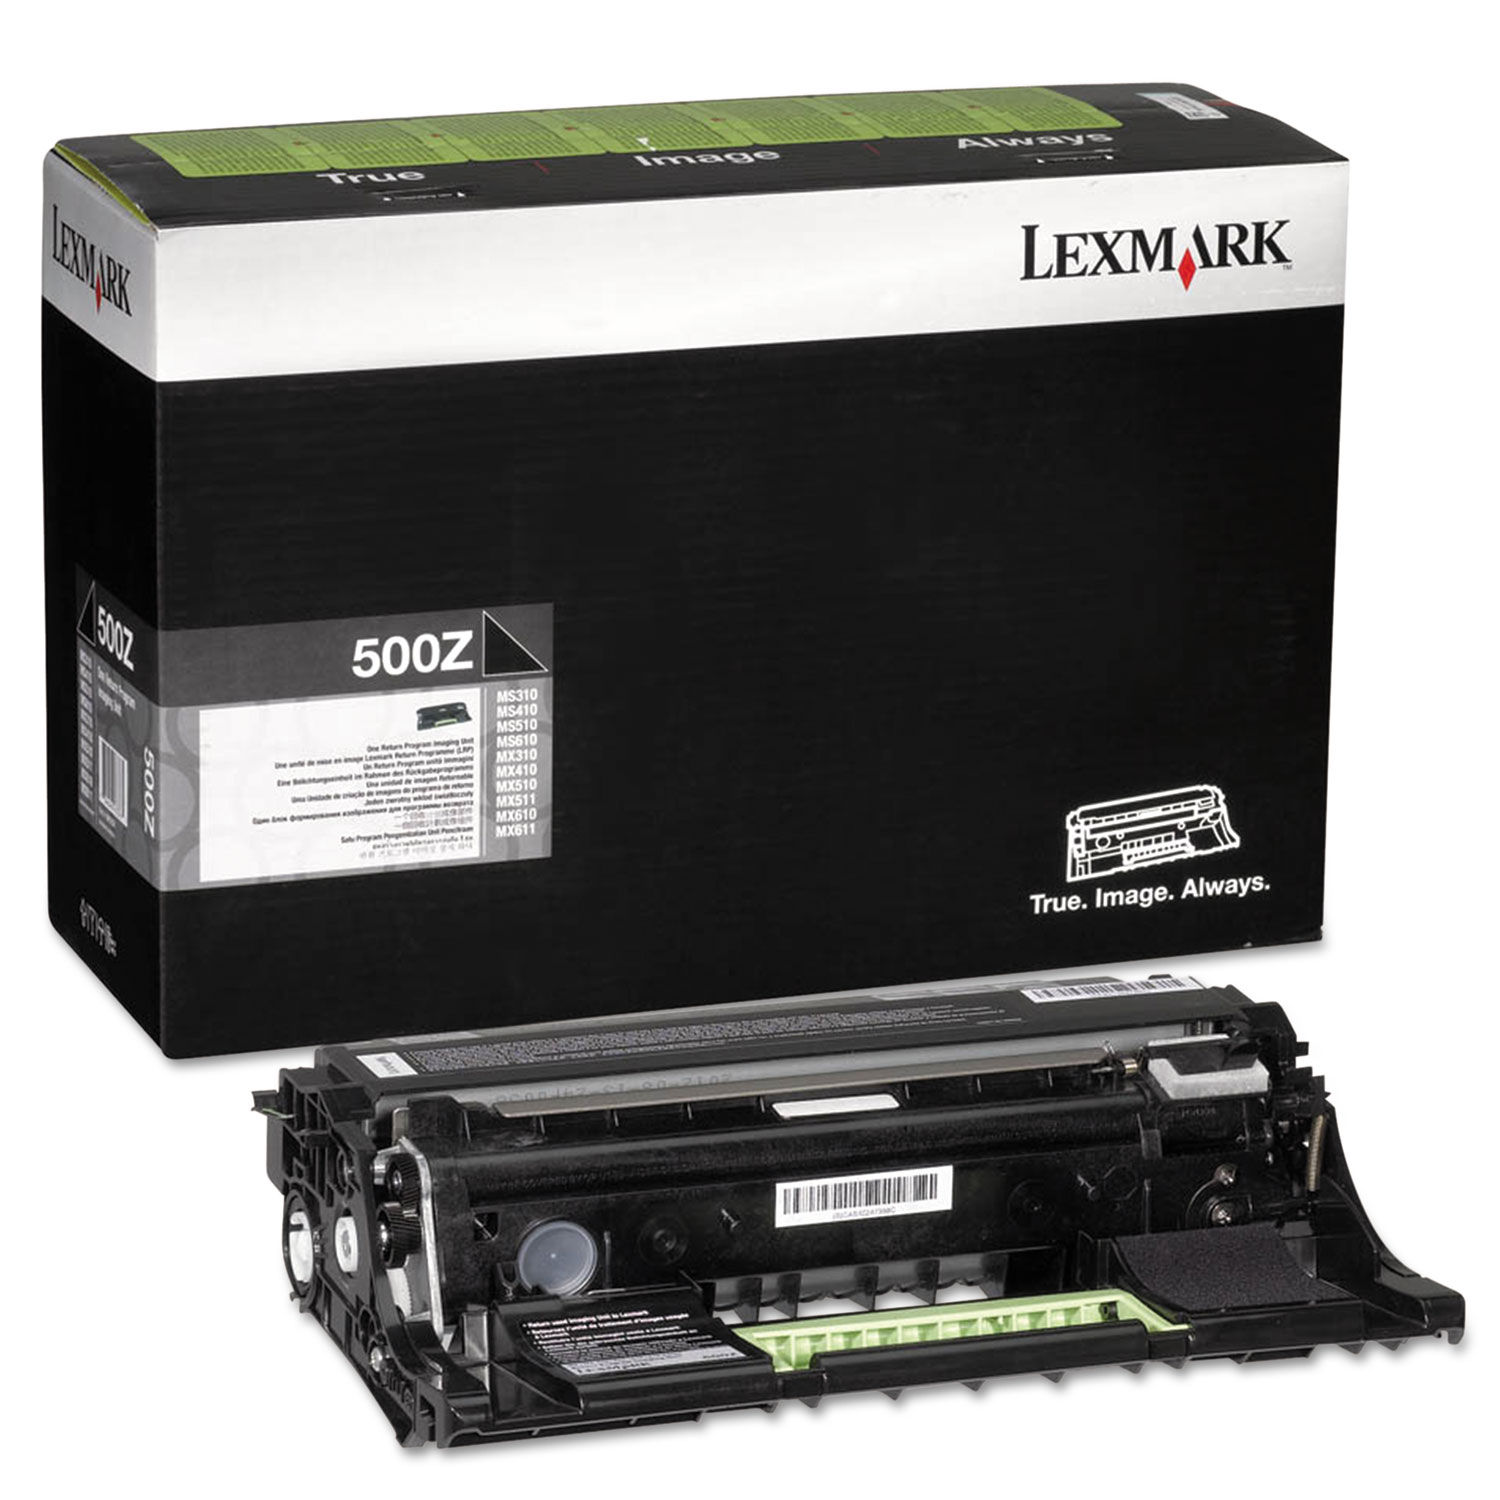 LEXMARK X611 WINDOWS 8 X64 TREIBER